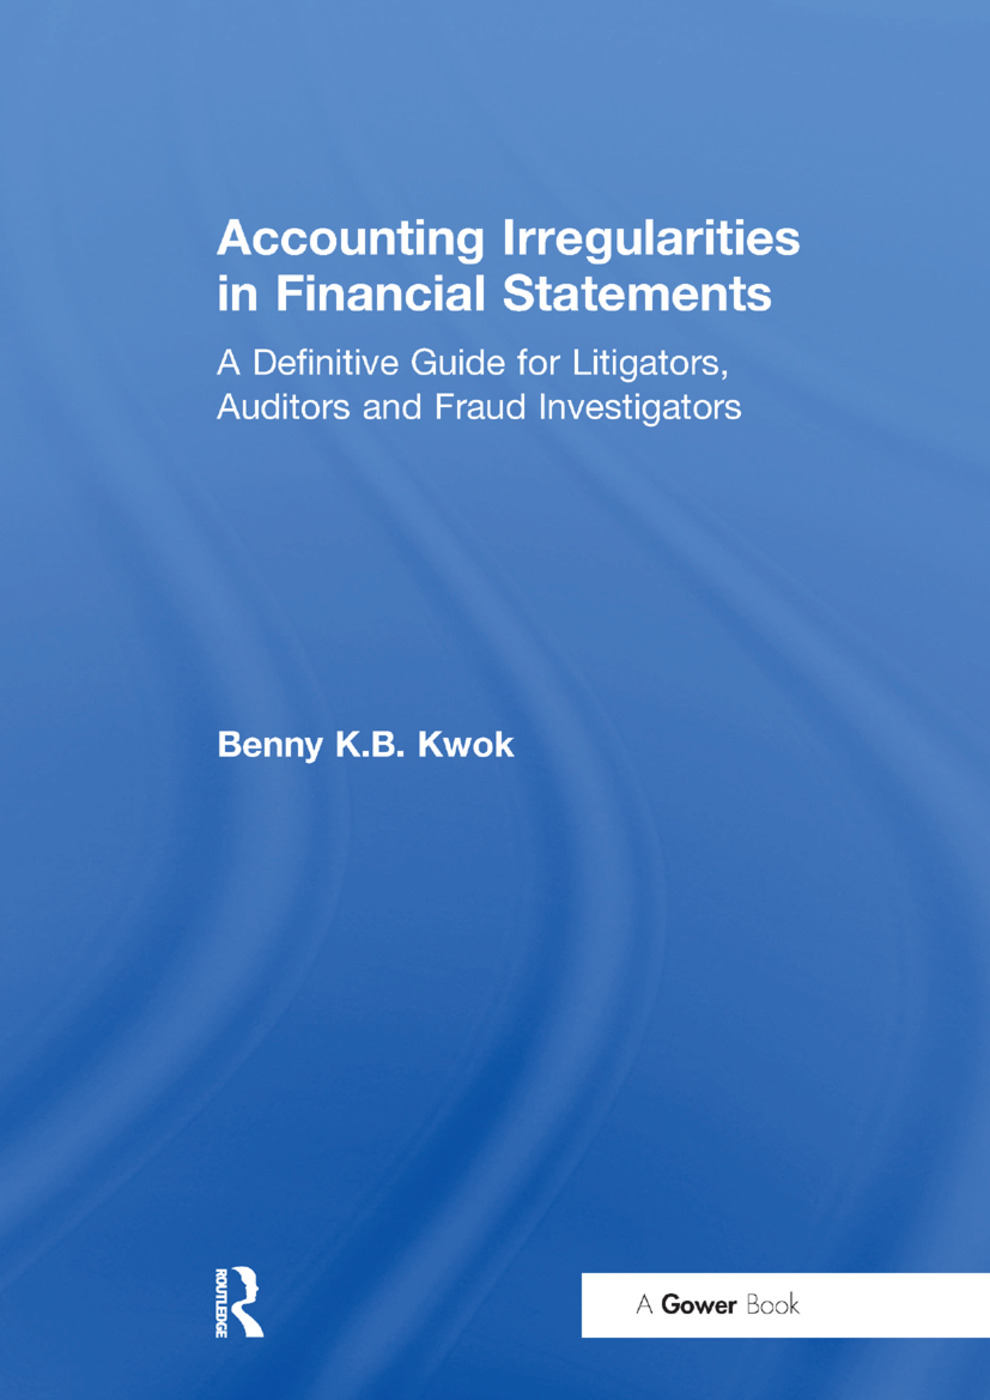 Accounting Irregularities in Financial Statements: A Definitive Guide for Litigators, Auditors and Fraud Investigators, 1st Edition (Paperback) book cover